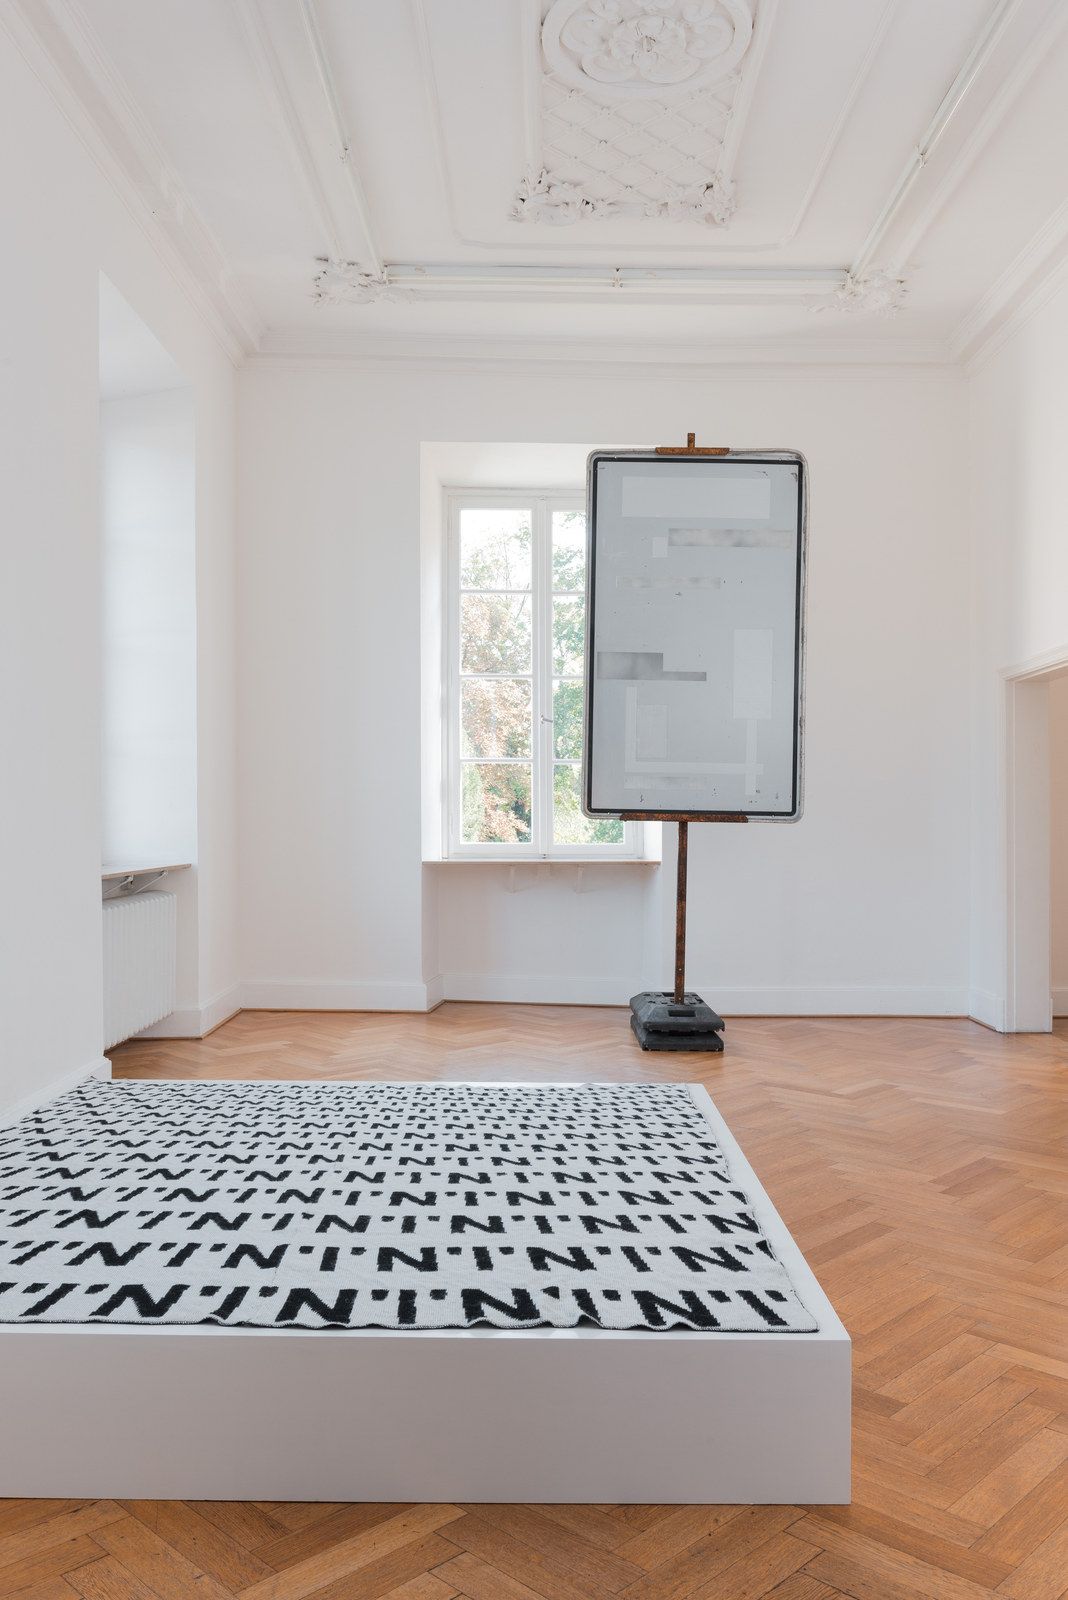 Klara Liden and Karl Holmqvist at Kunstverein Braunschweig_01